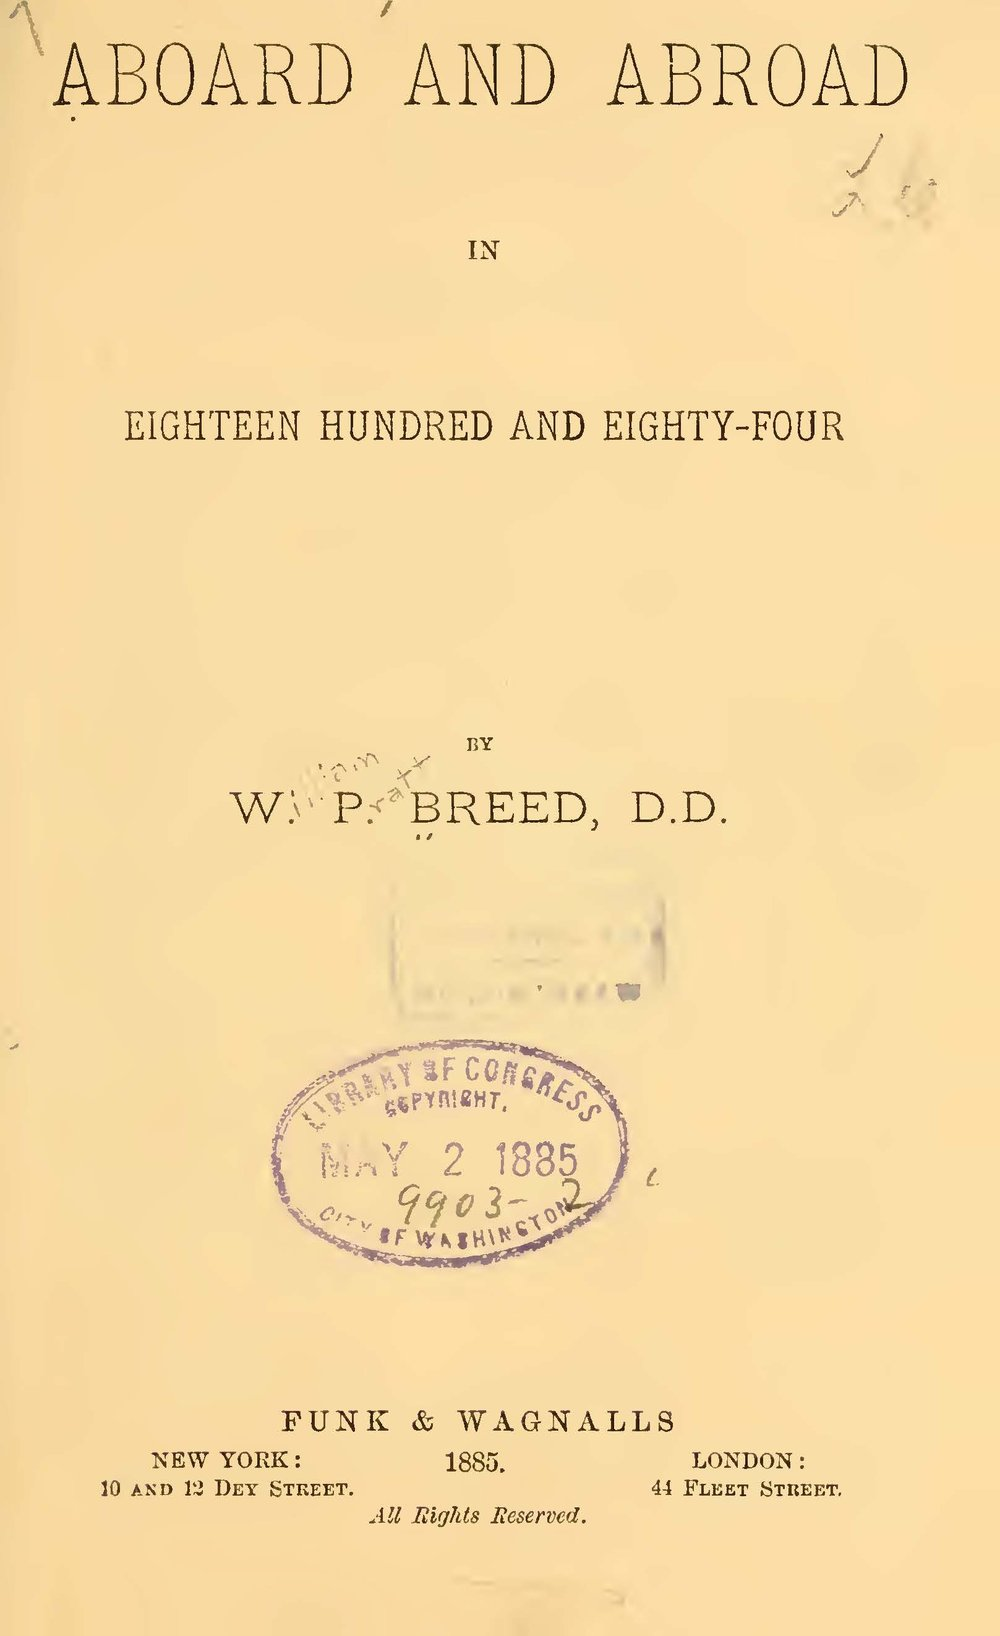 Breed, William Pratt, Aboard and Abroad in Eighteen Hundred and Eighty Four Title Page.jpg